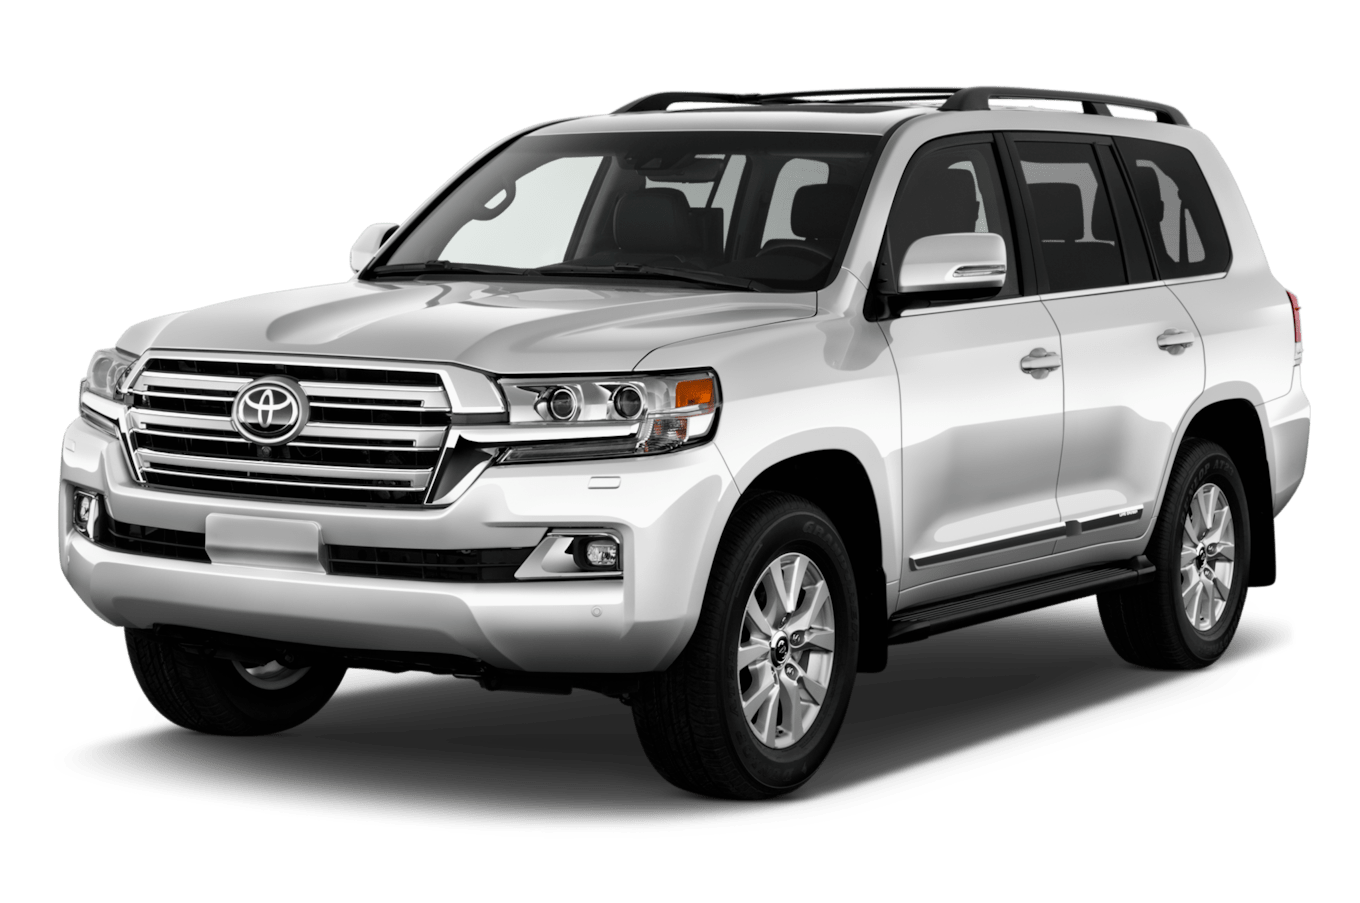 7 2016 toyota land cruiser